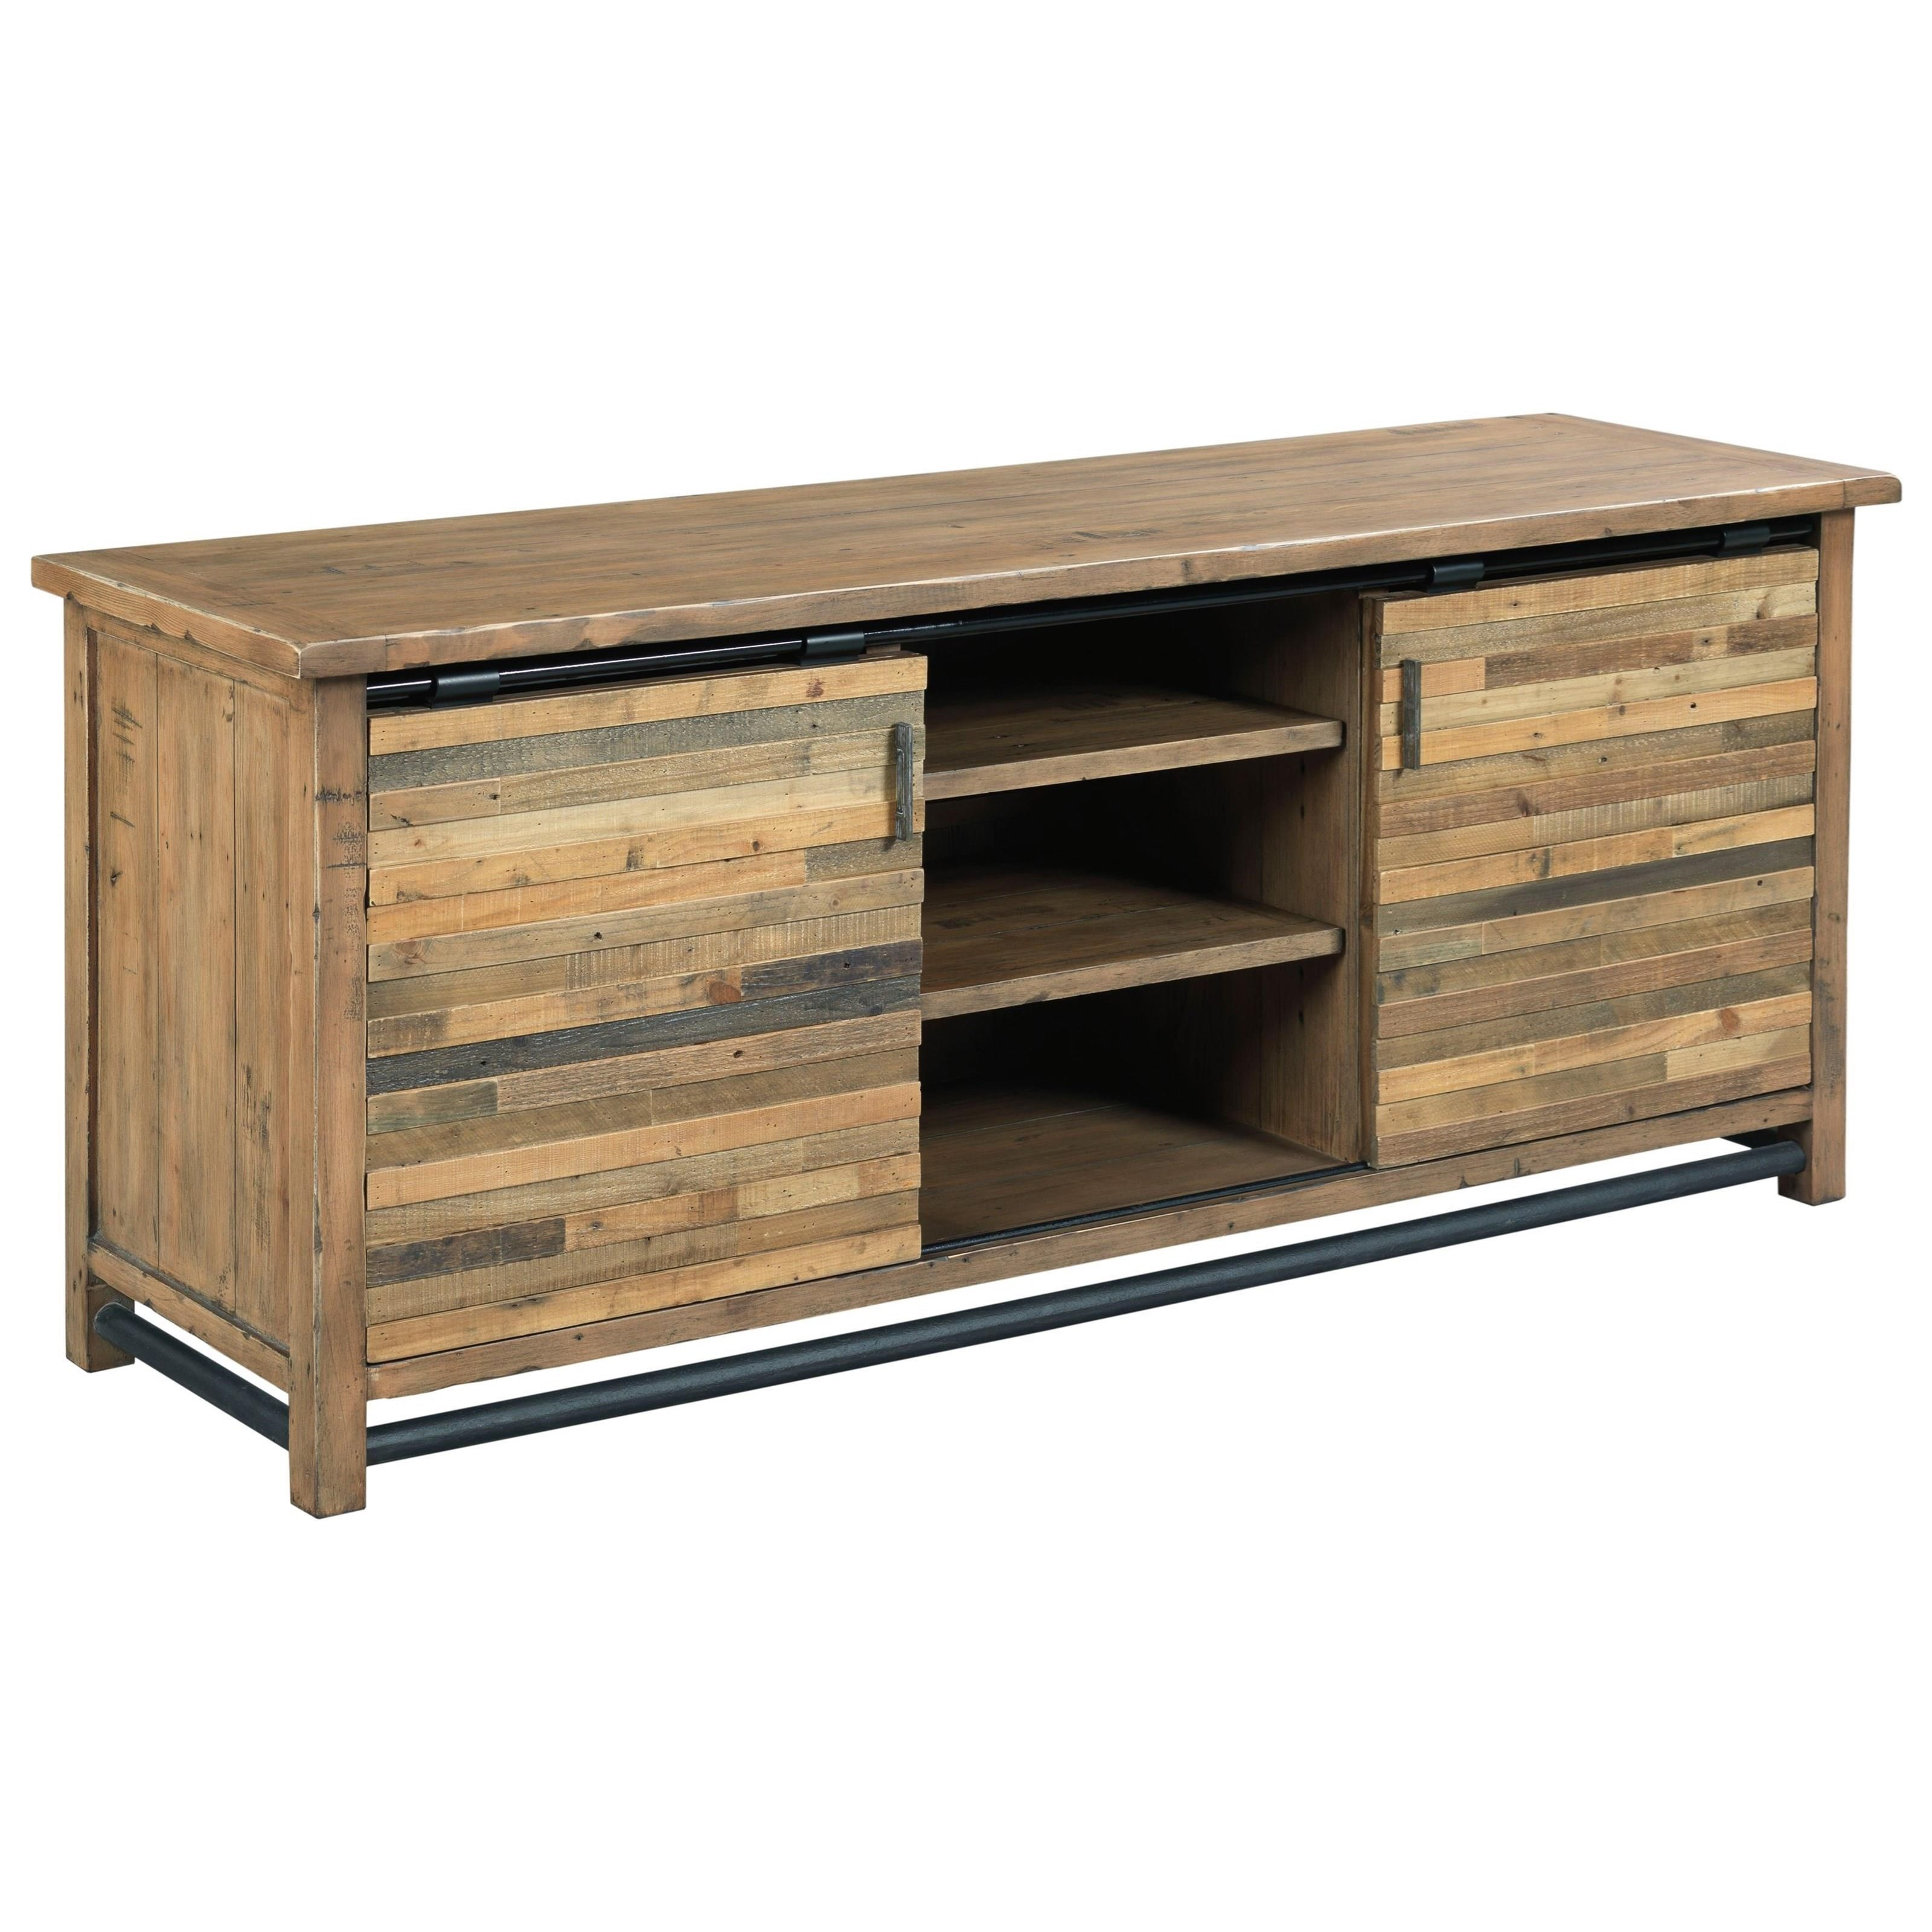 Reclamation Place Entertainment Console by Hammary at Alison Craig Home Furnishings